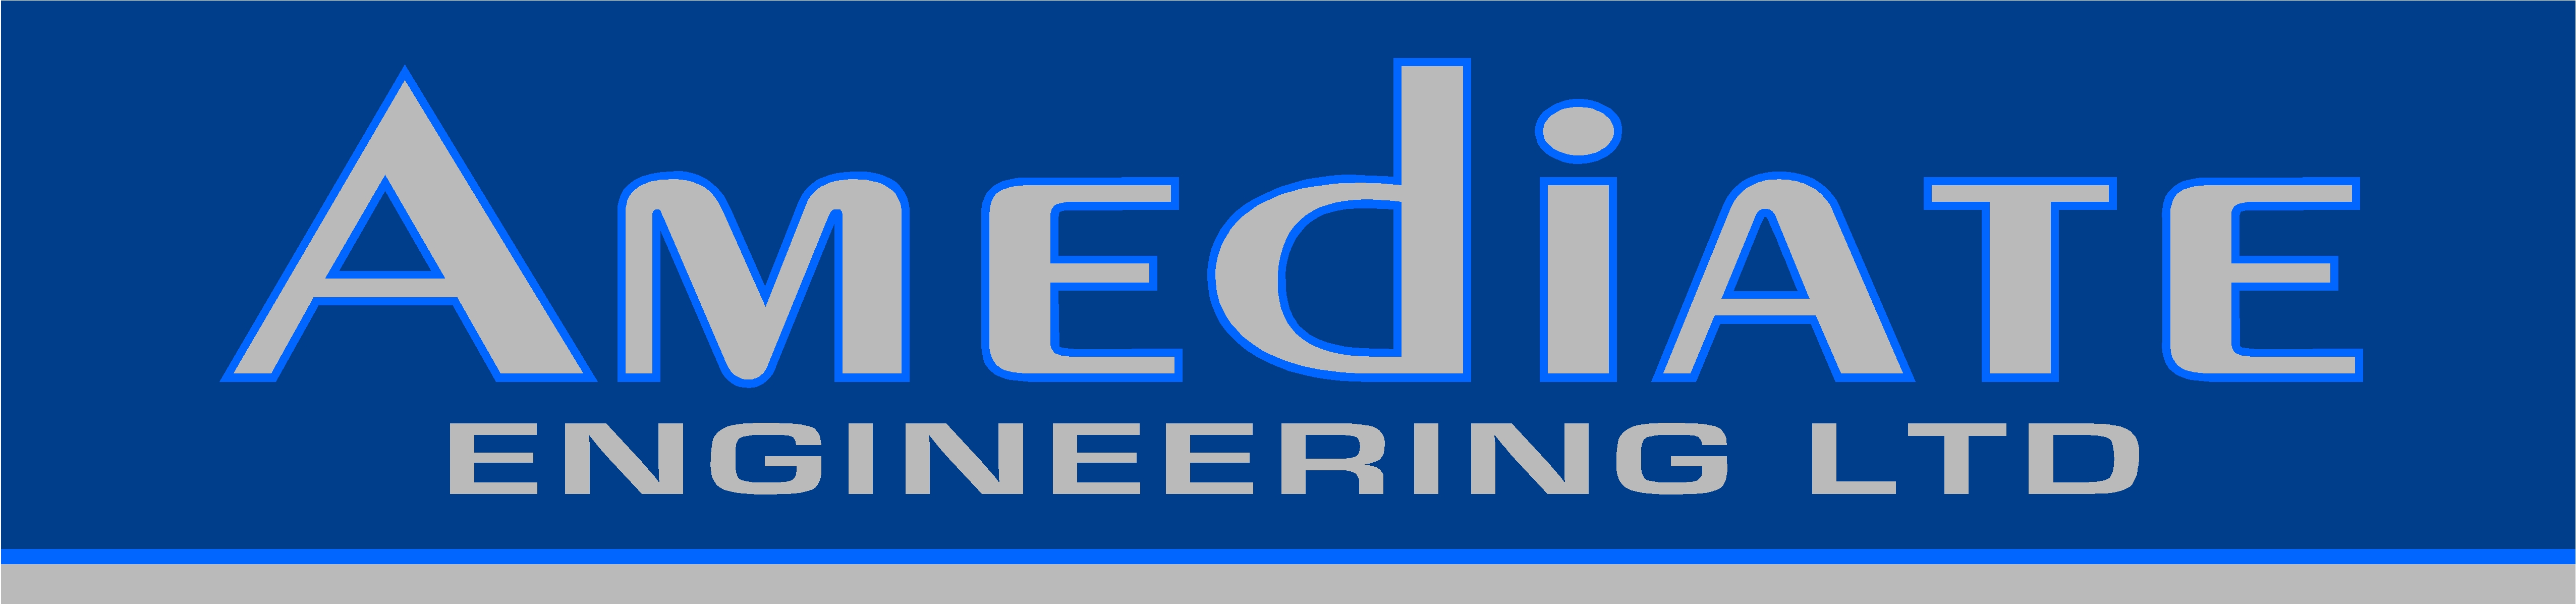 Amediate Engineering